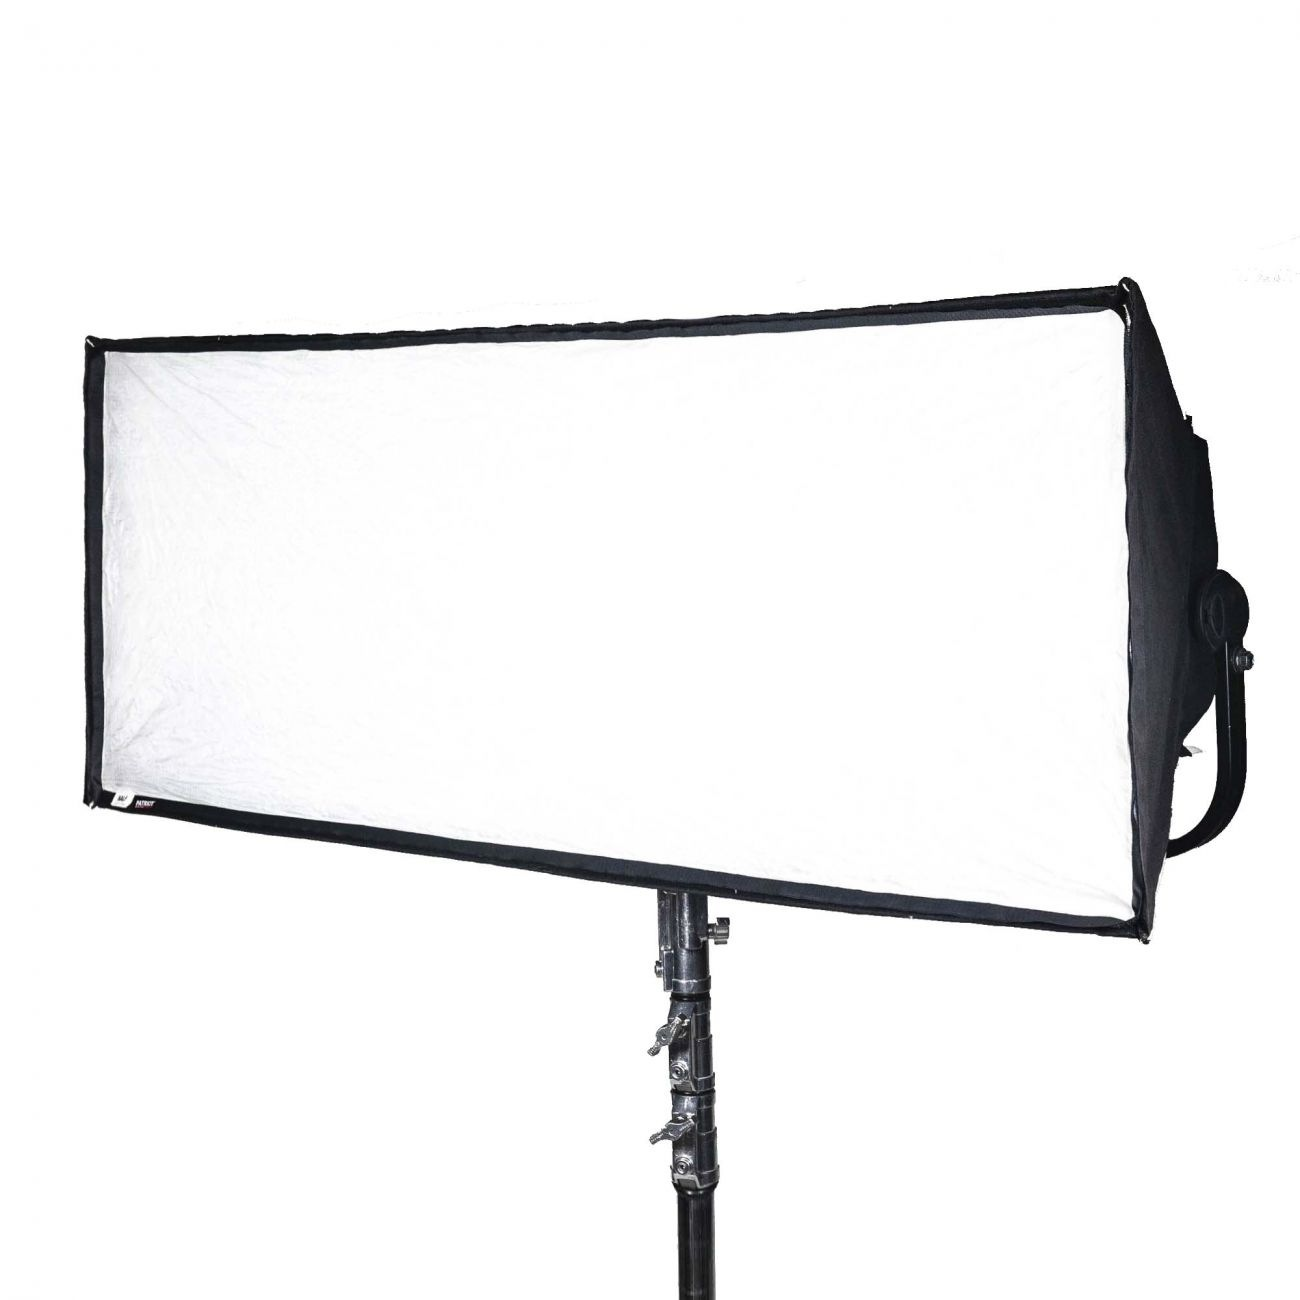 Softbox SnapBag for S120